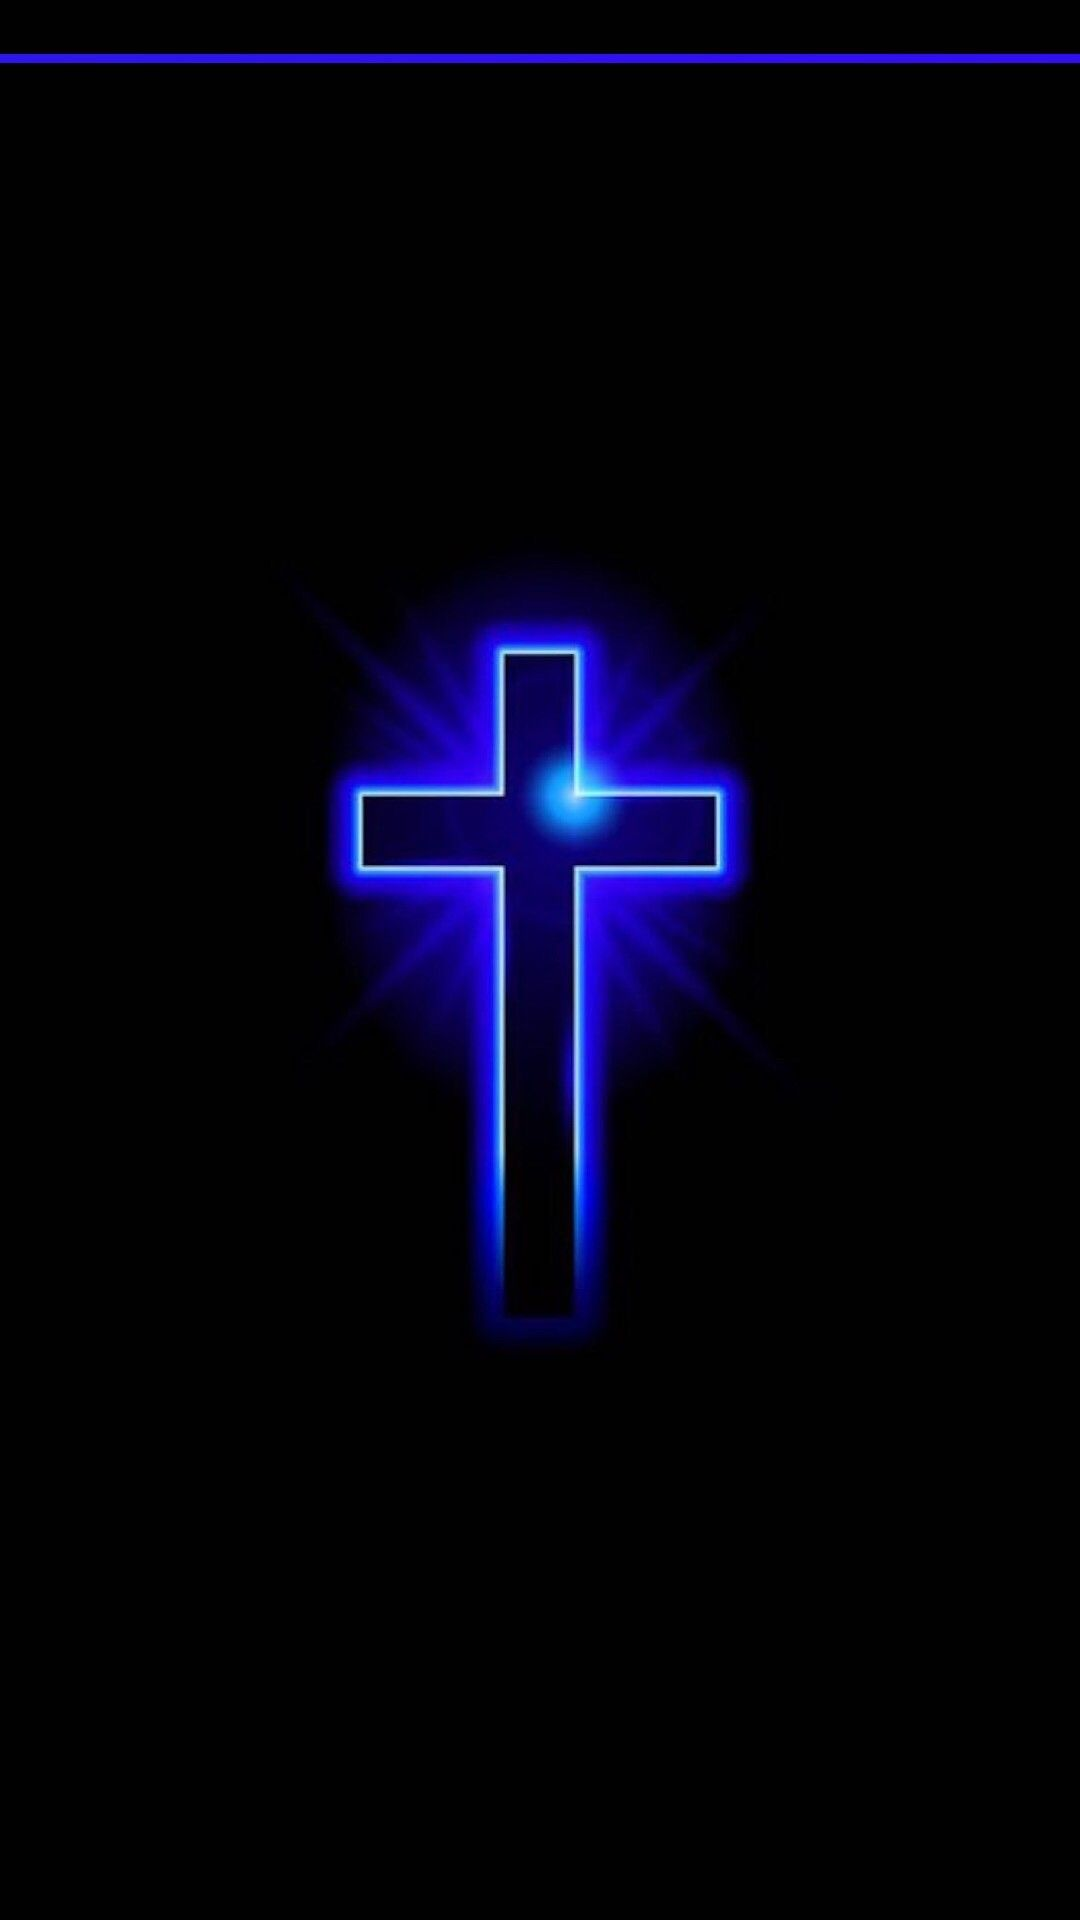 Cross Wallpapers High Quality Hupages Download Iphone Wallpapers Cross Wallpaper Jesus On The Cross Jesus Cross Wallpaper